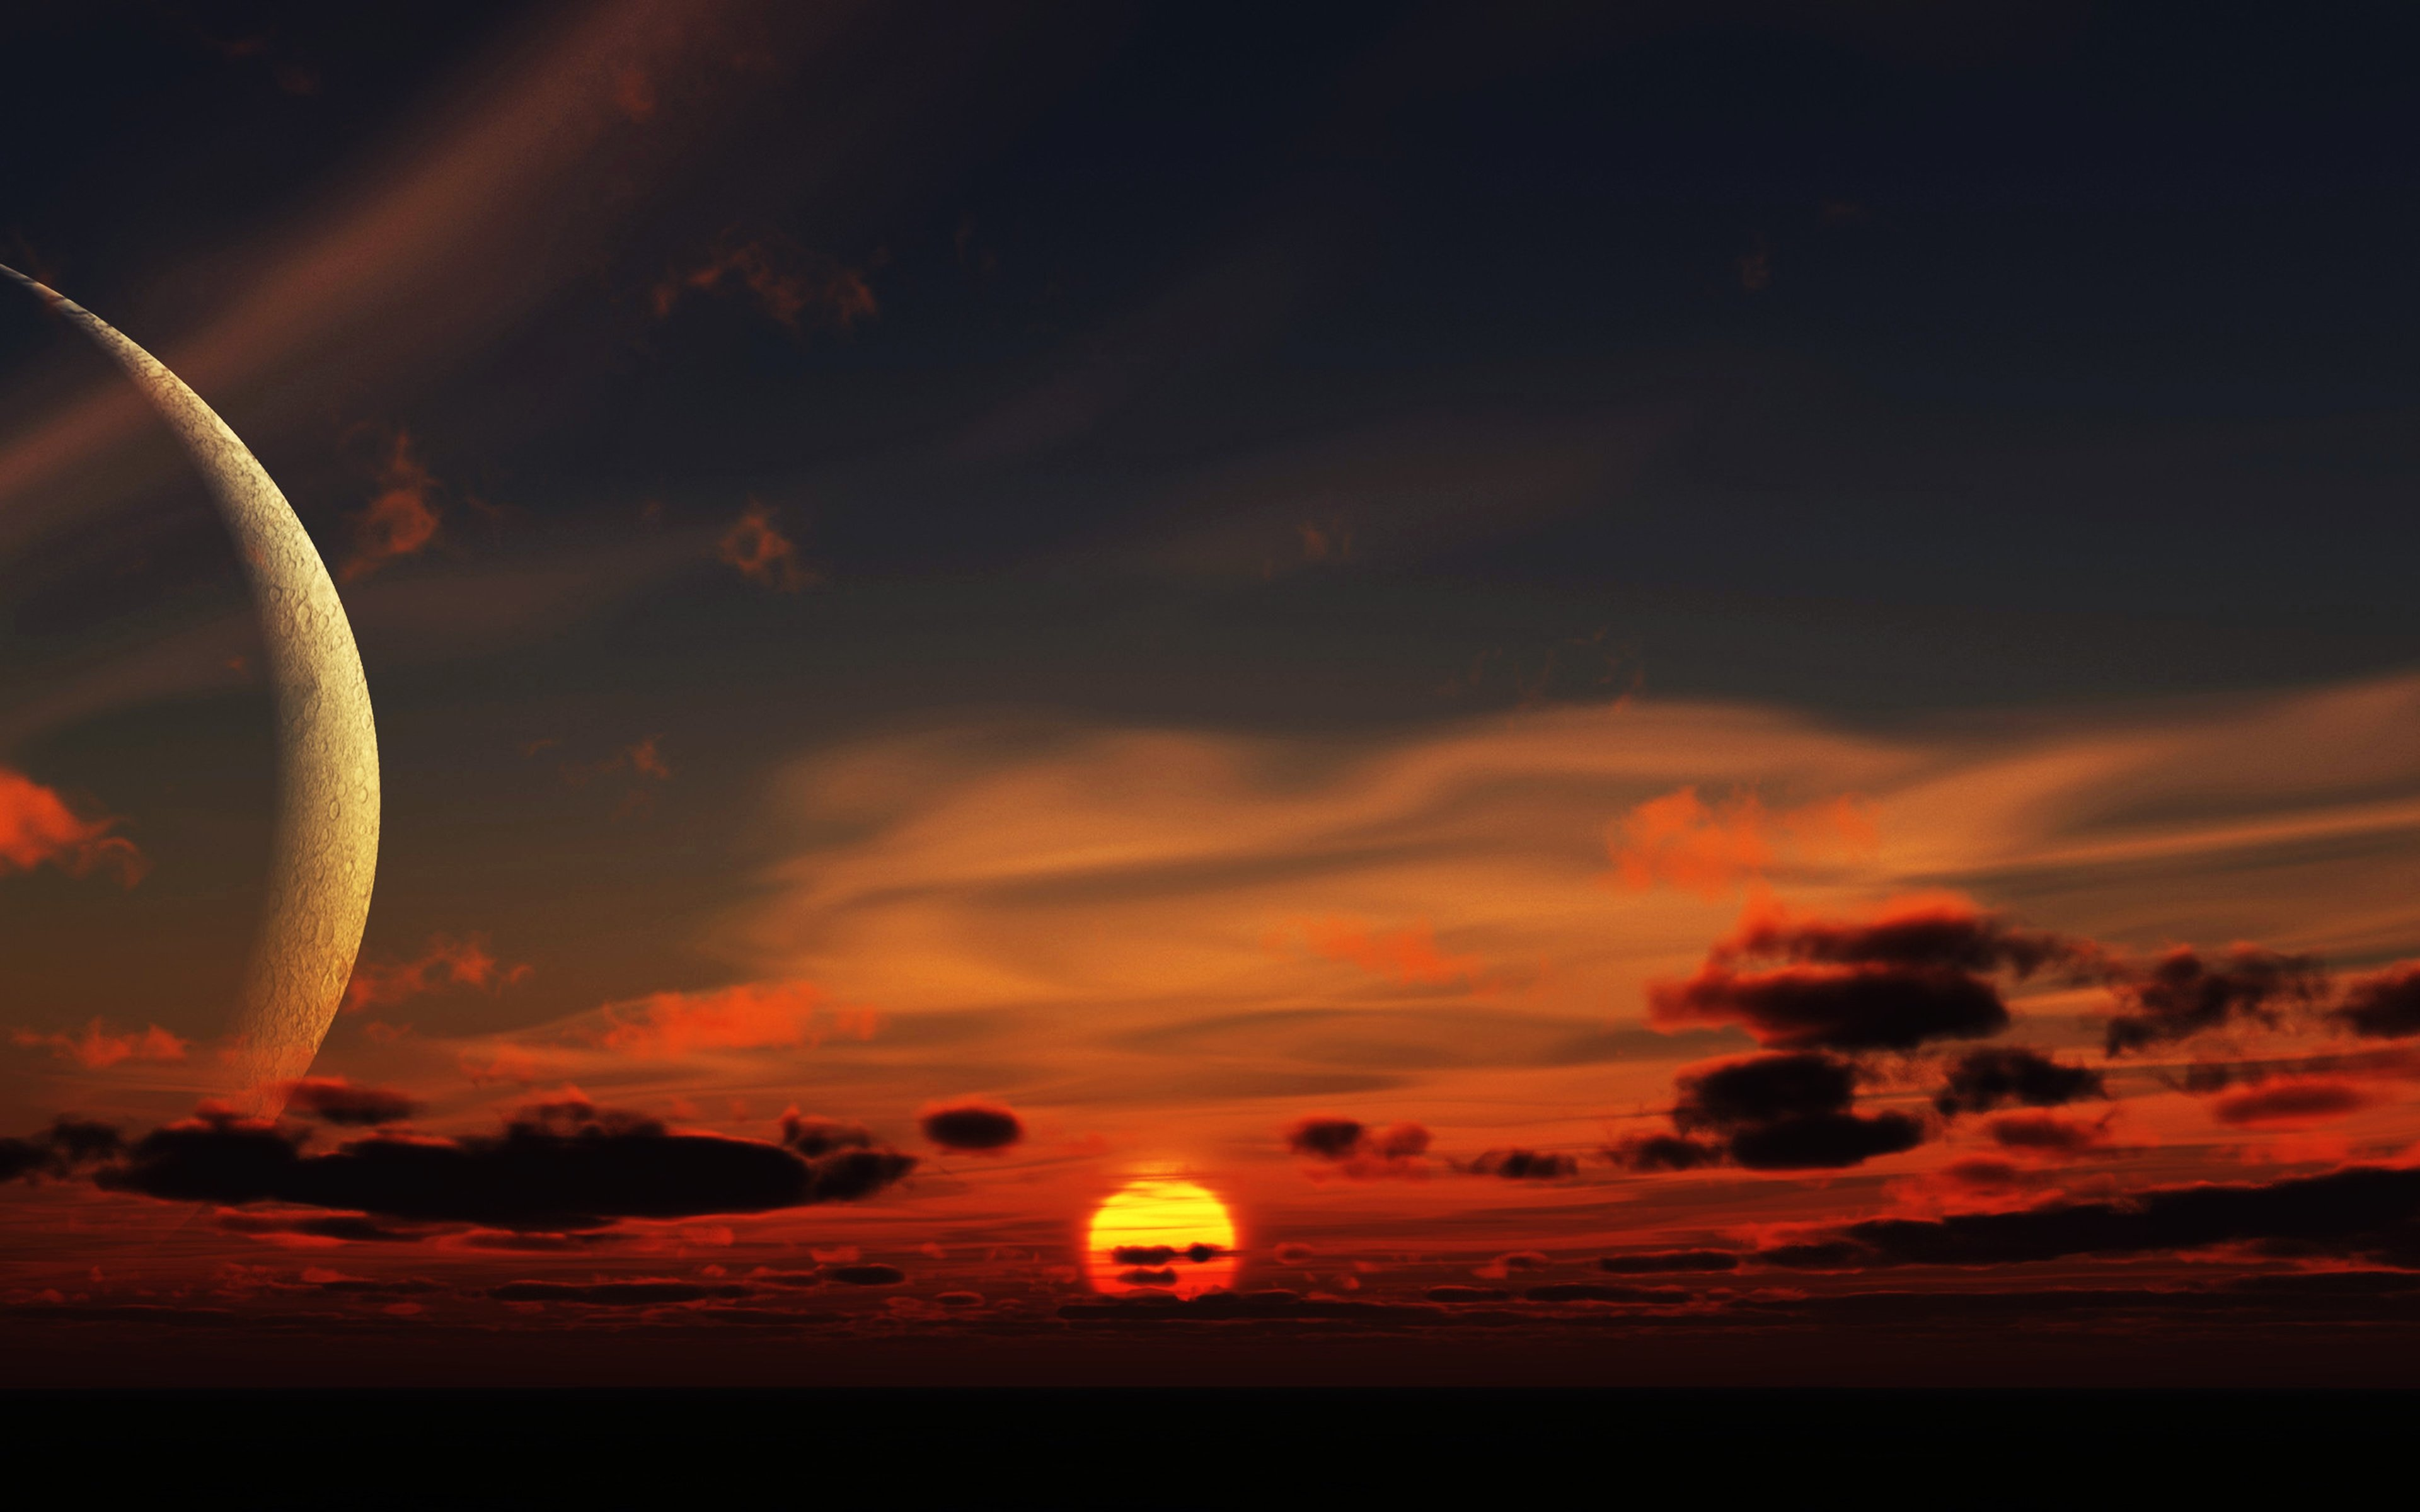 Serene Wallpapers Large Fall Fantasy Space Moon Sunset Sky Clouds Landscape Nature